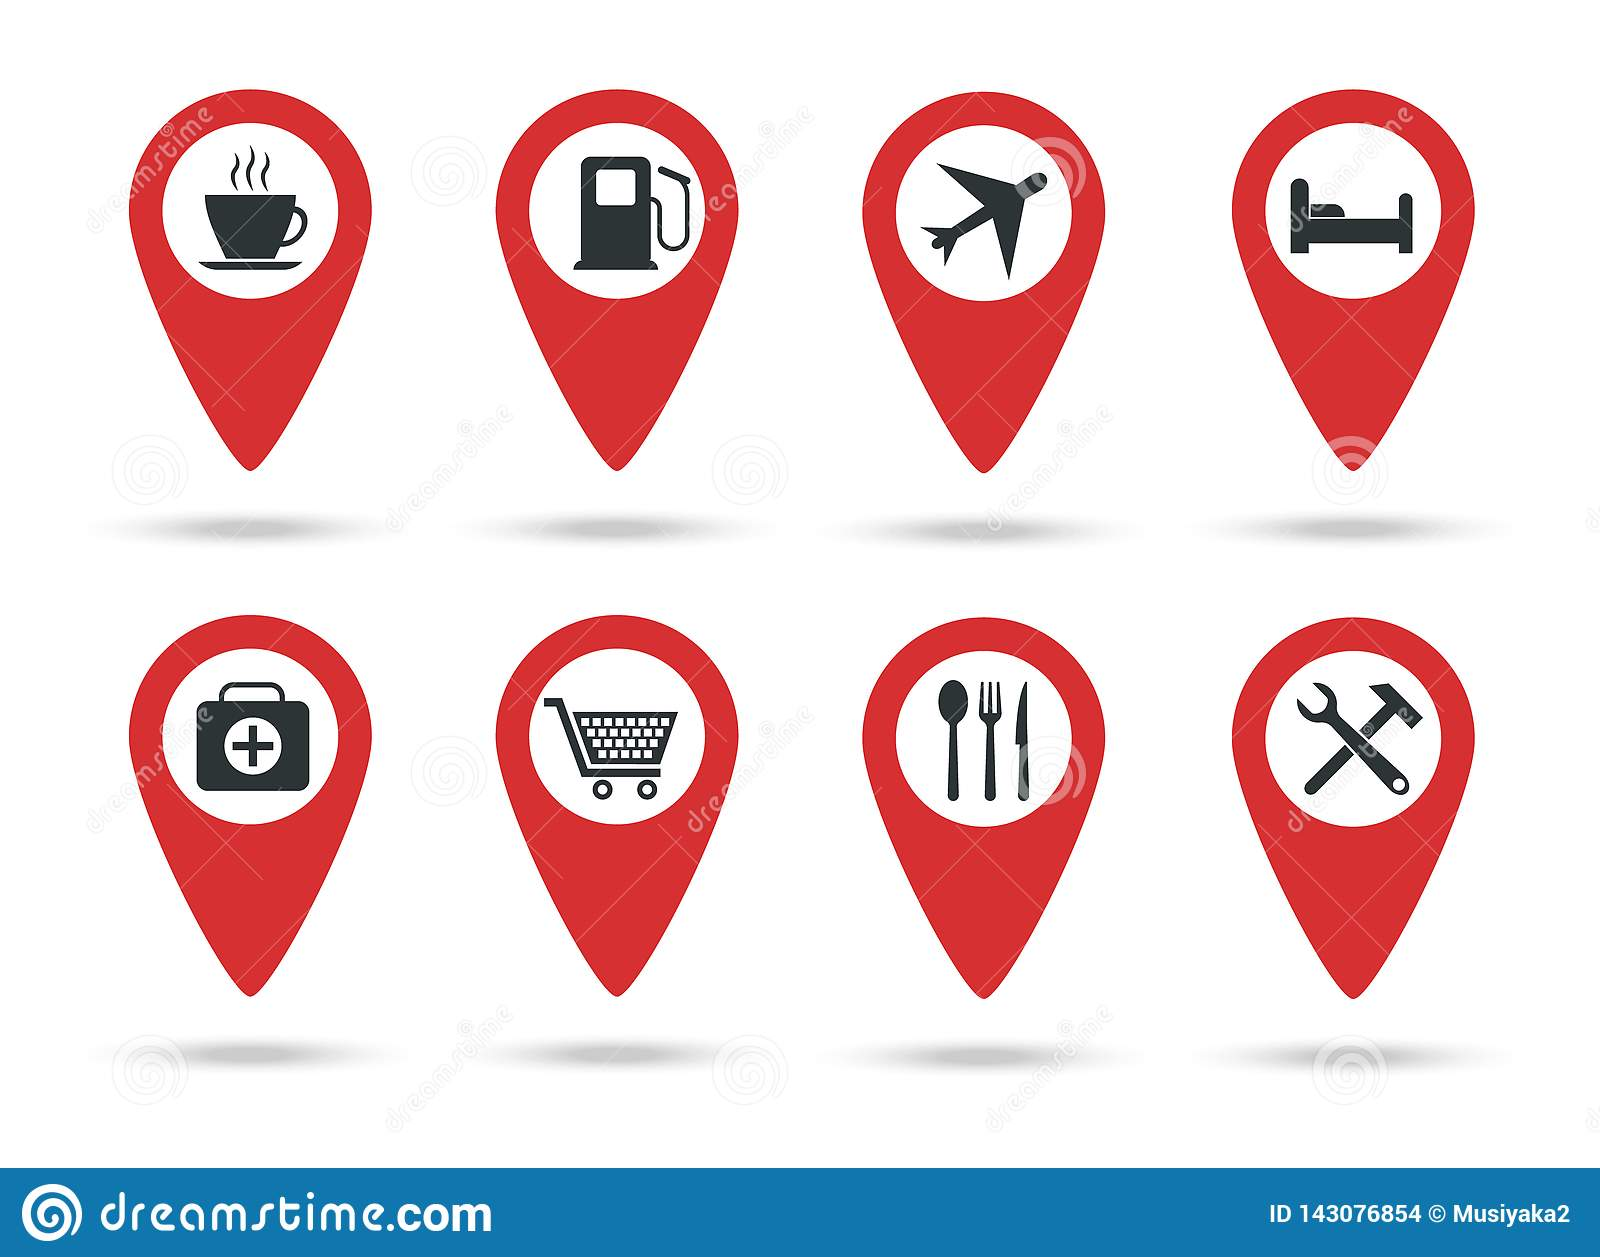 Locations icons. A collection of map markers with service marks. Vector illustration. Red flat locations